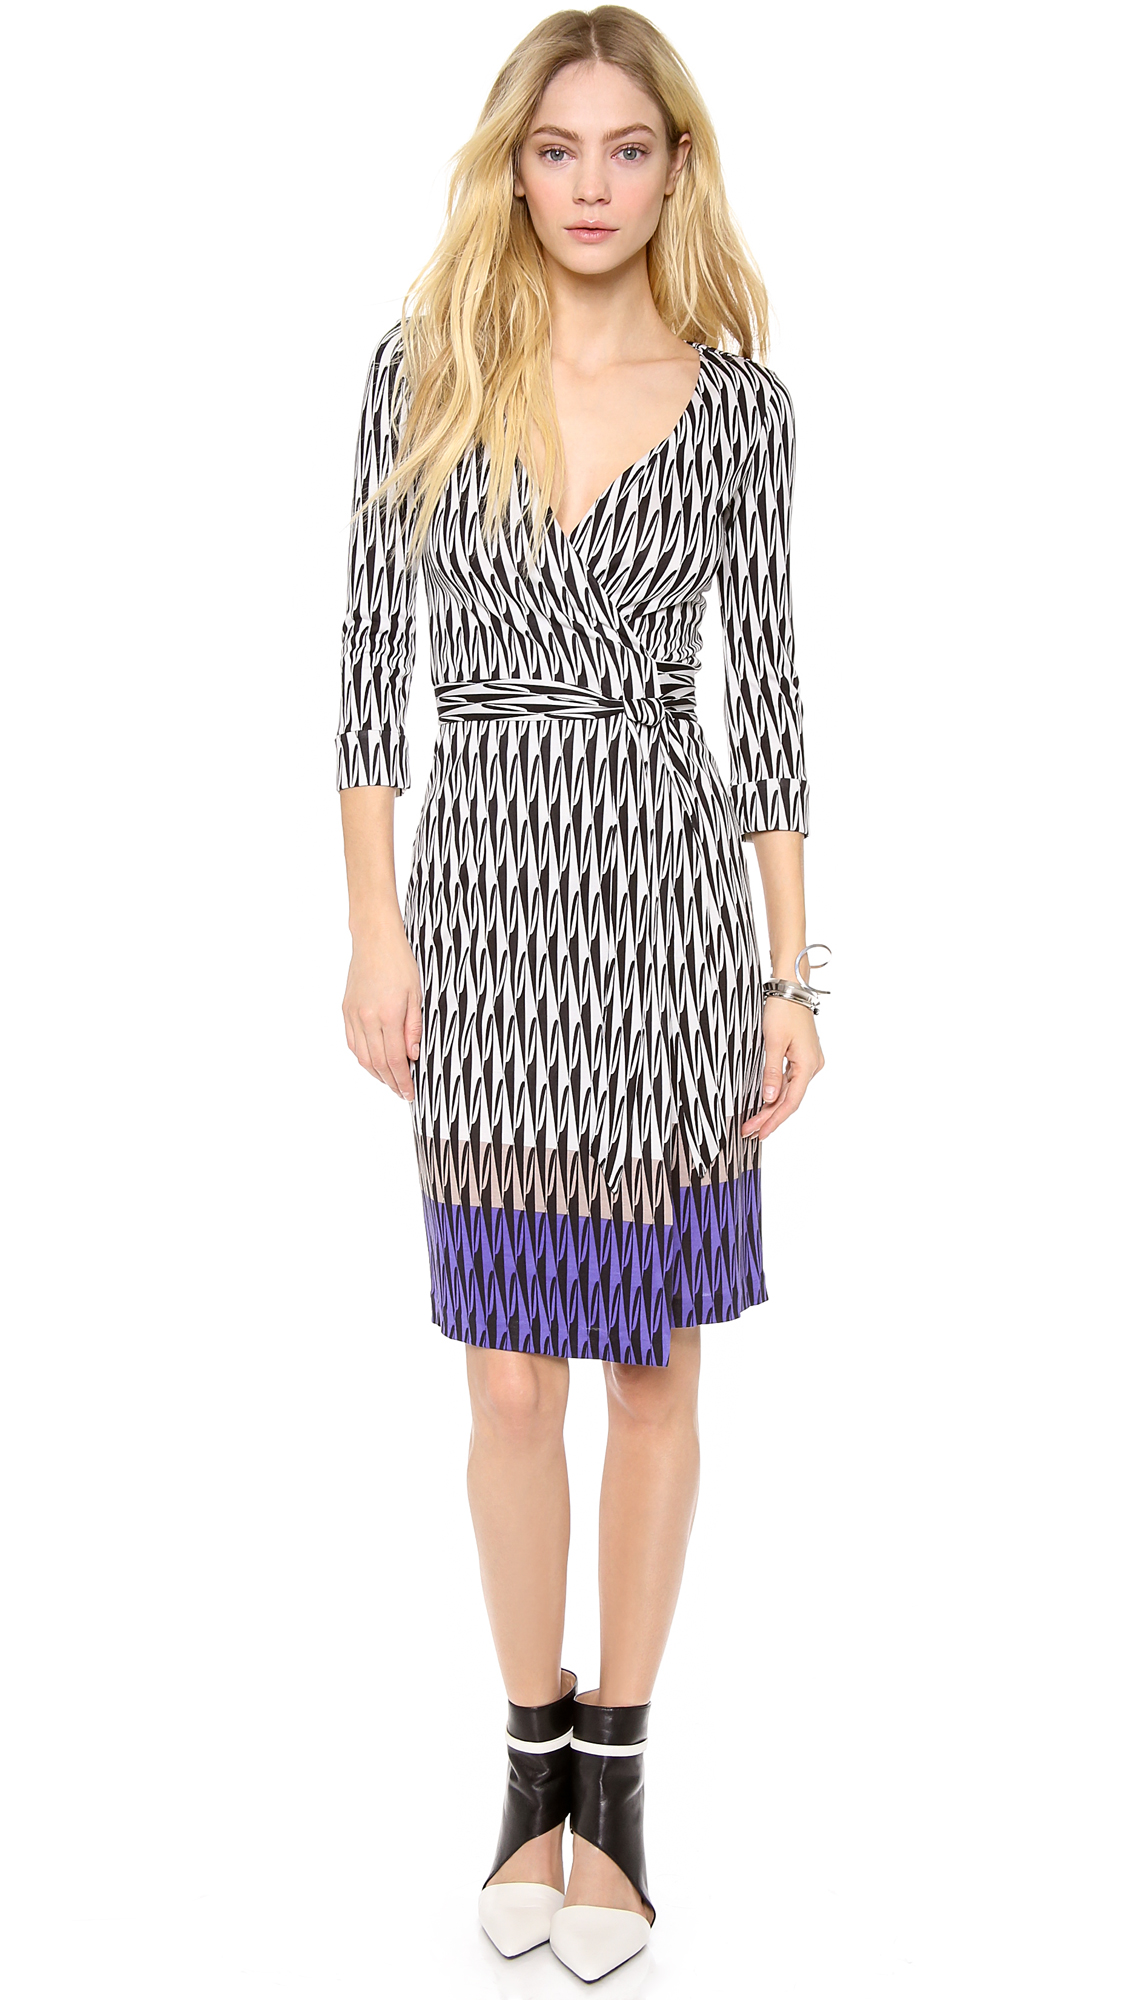 diane von furstenberg new julian two wrap dress in white modern harlequin placement lyst. Black Bedroom Furniture Sets. Home Design Ideas